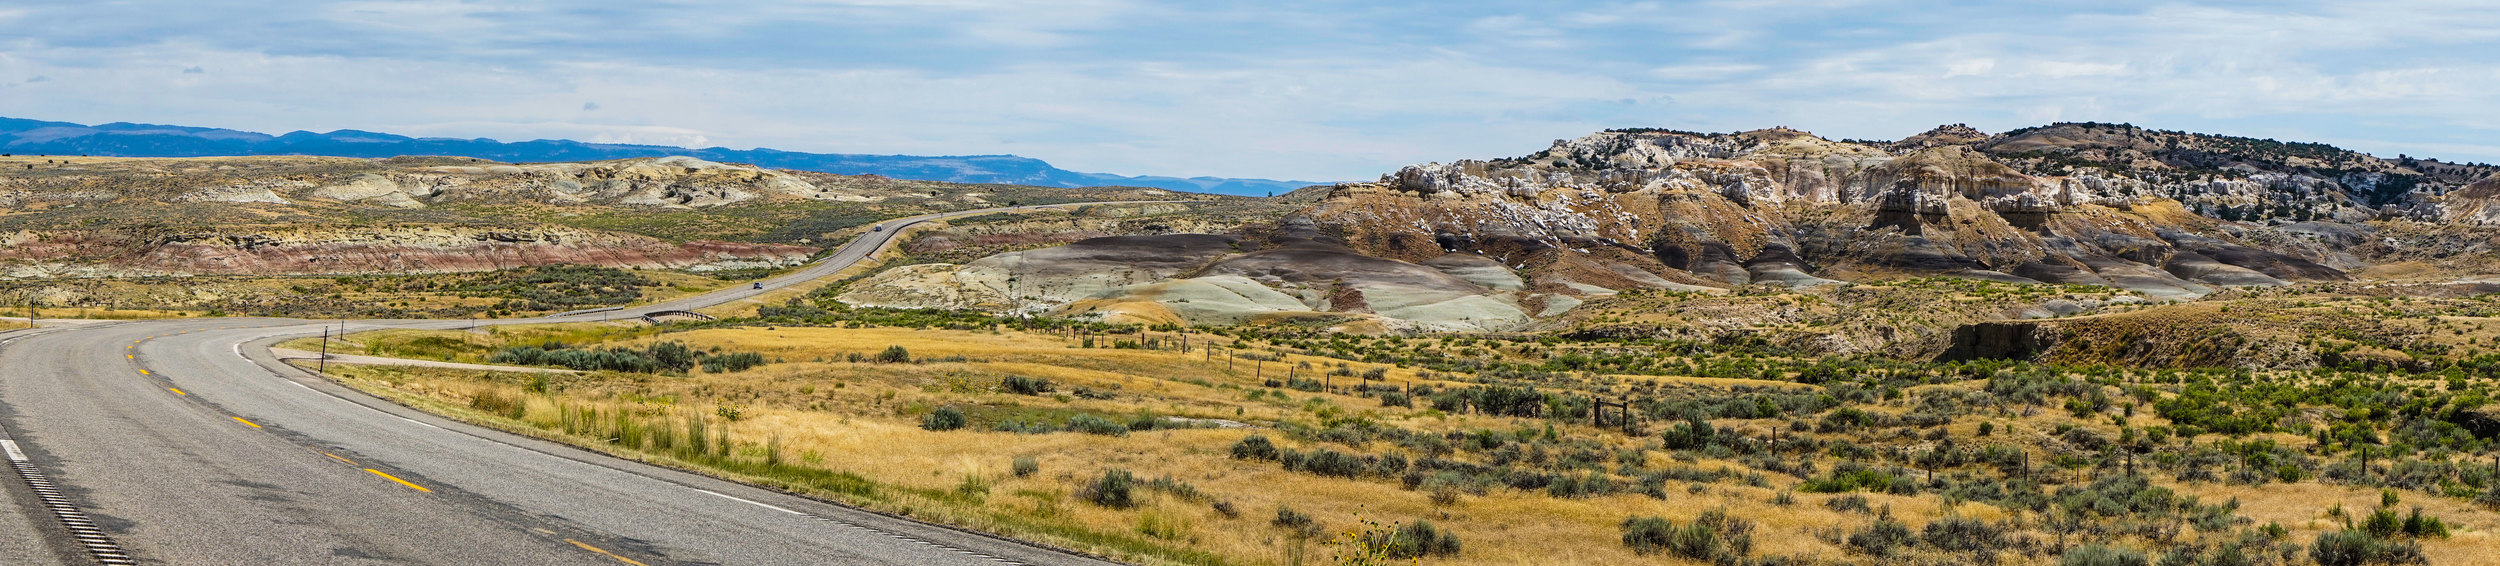 """So much of the Landscape between Shoshone National Forest and the Bighorns looks like this. Some might call it """"desert like"""" but I found it invigorating. The wide open expanses provide views and a feeling of openness one cannot find in a city or New England type of geography."""